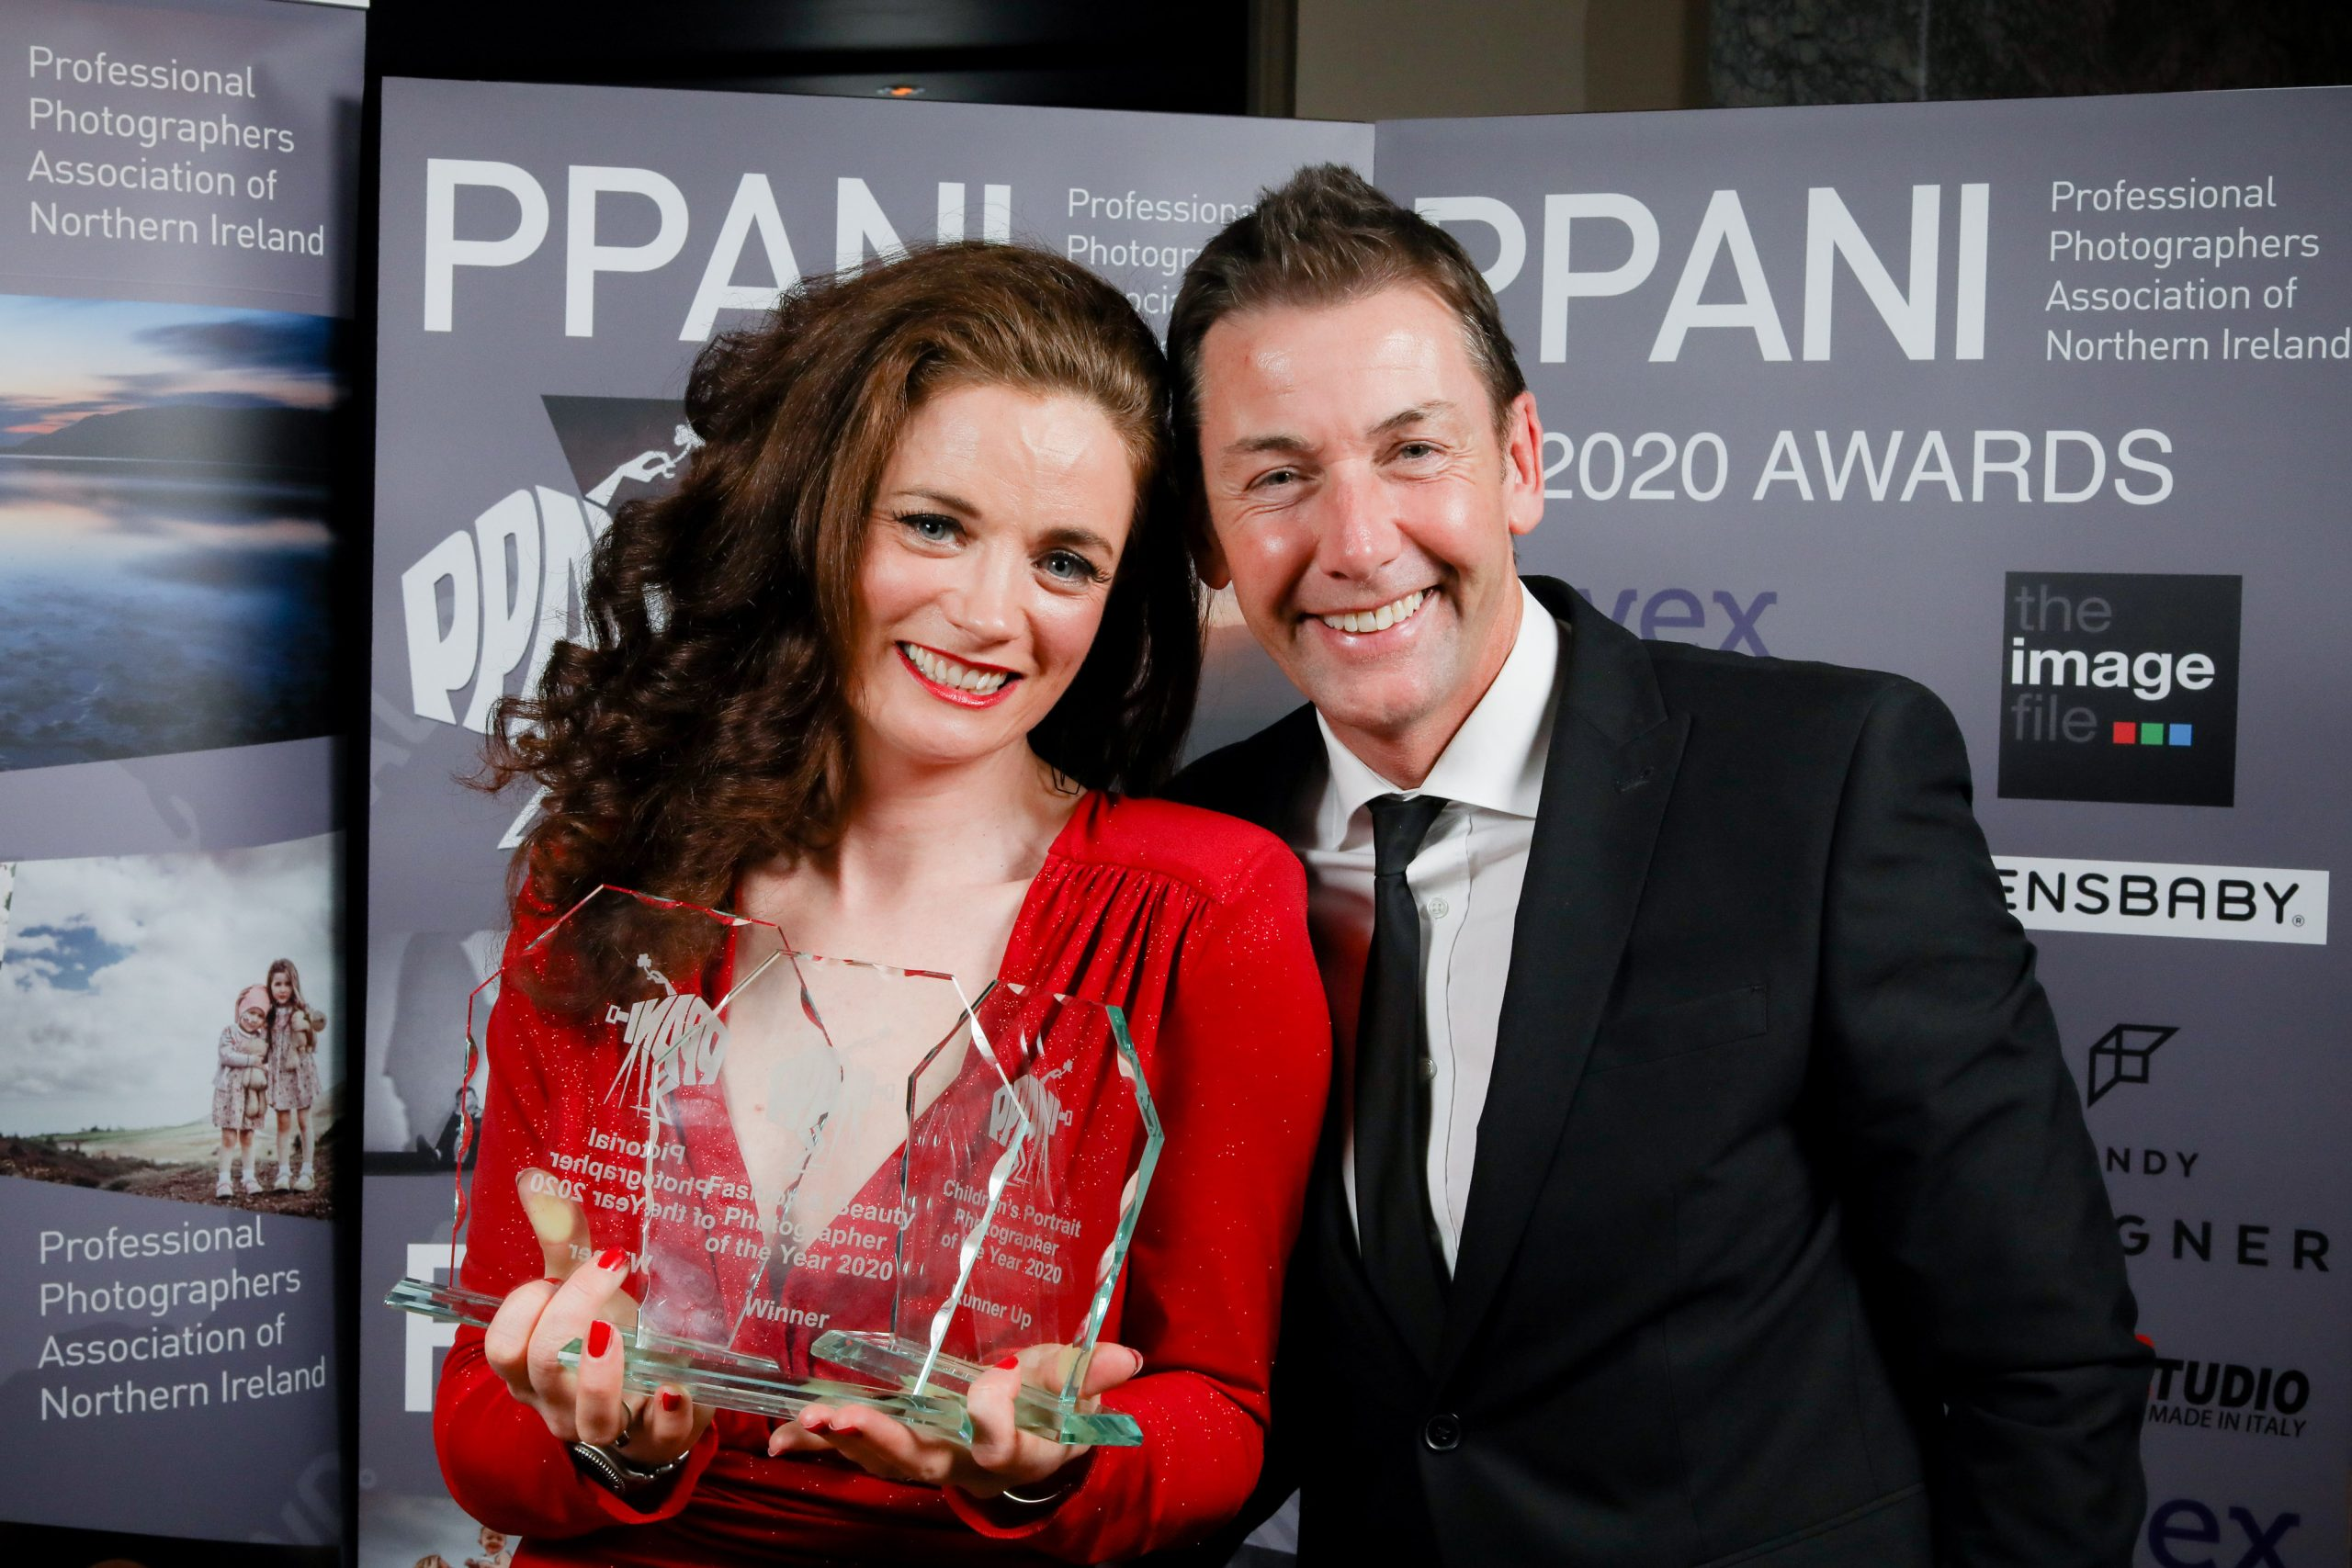 PPANI Awards 2020